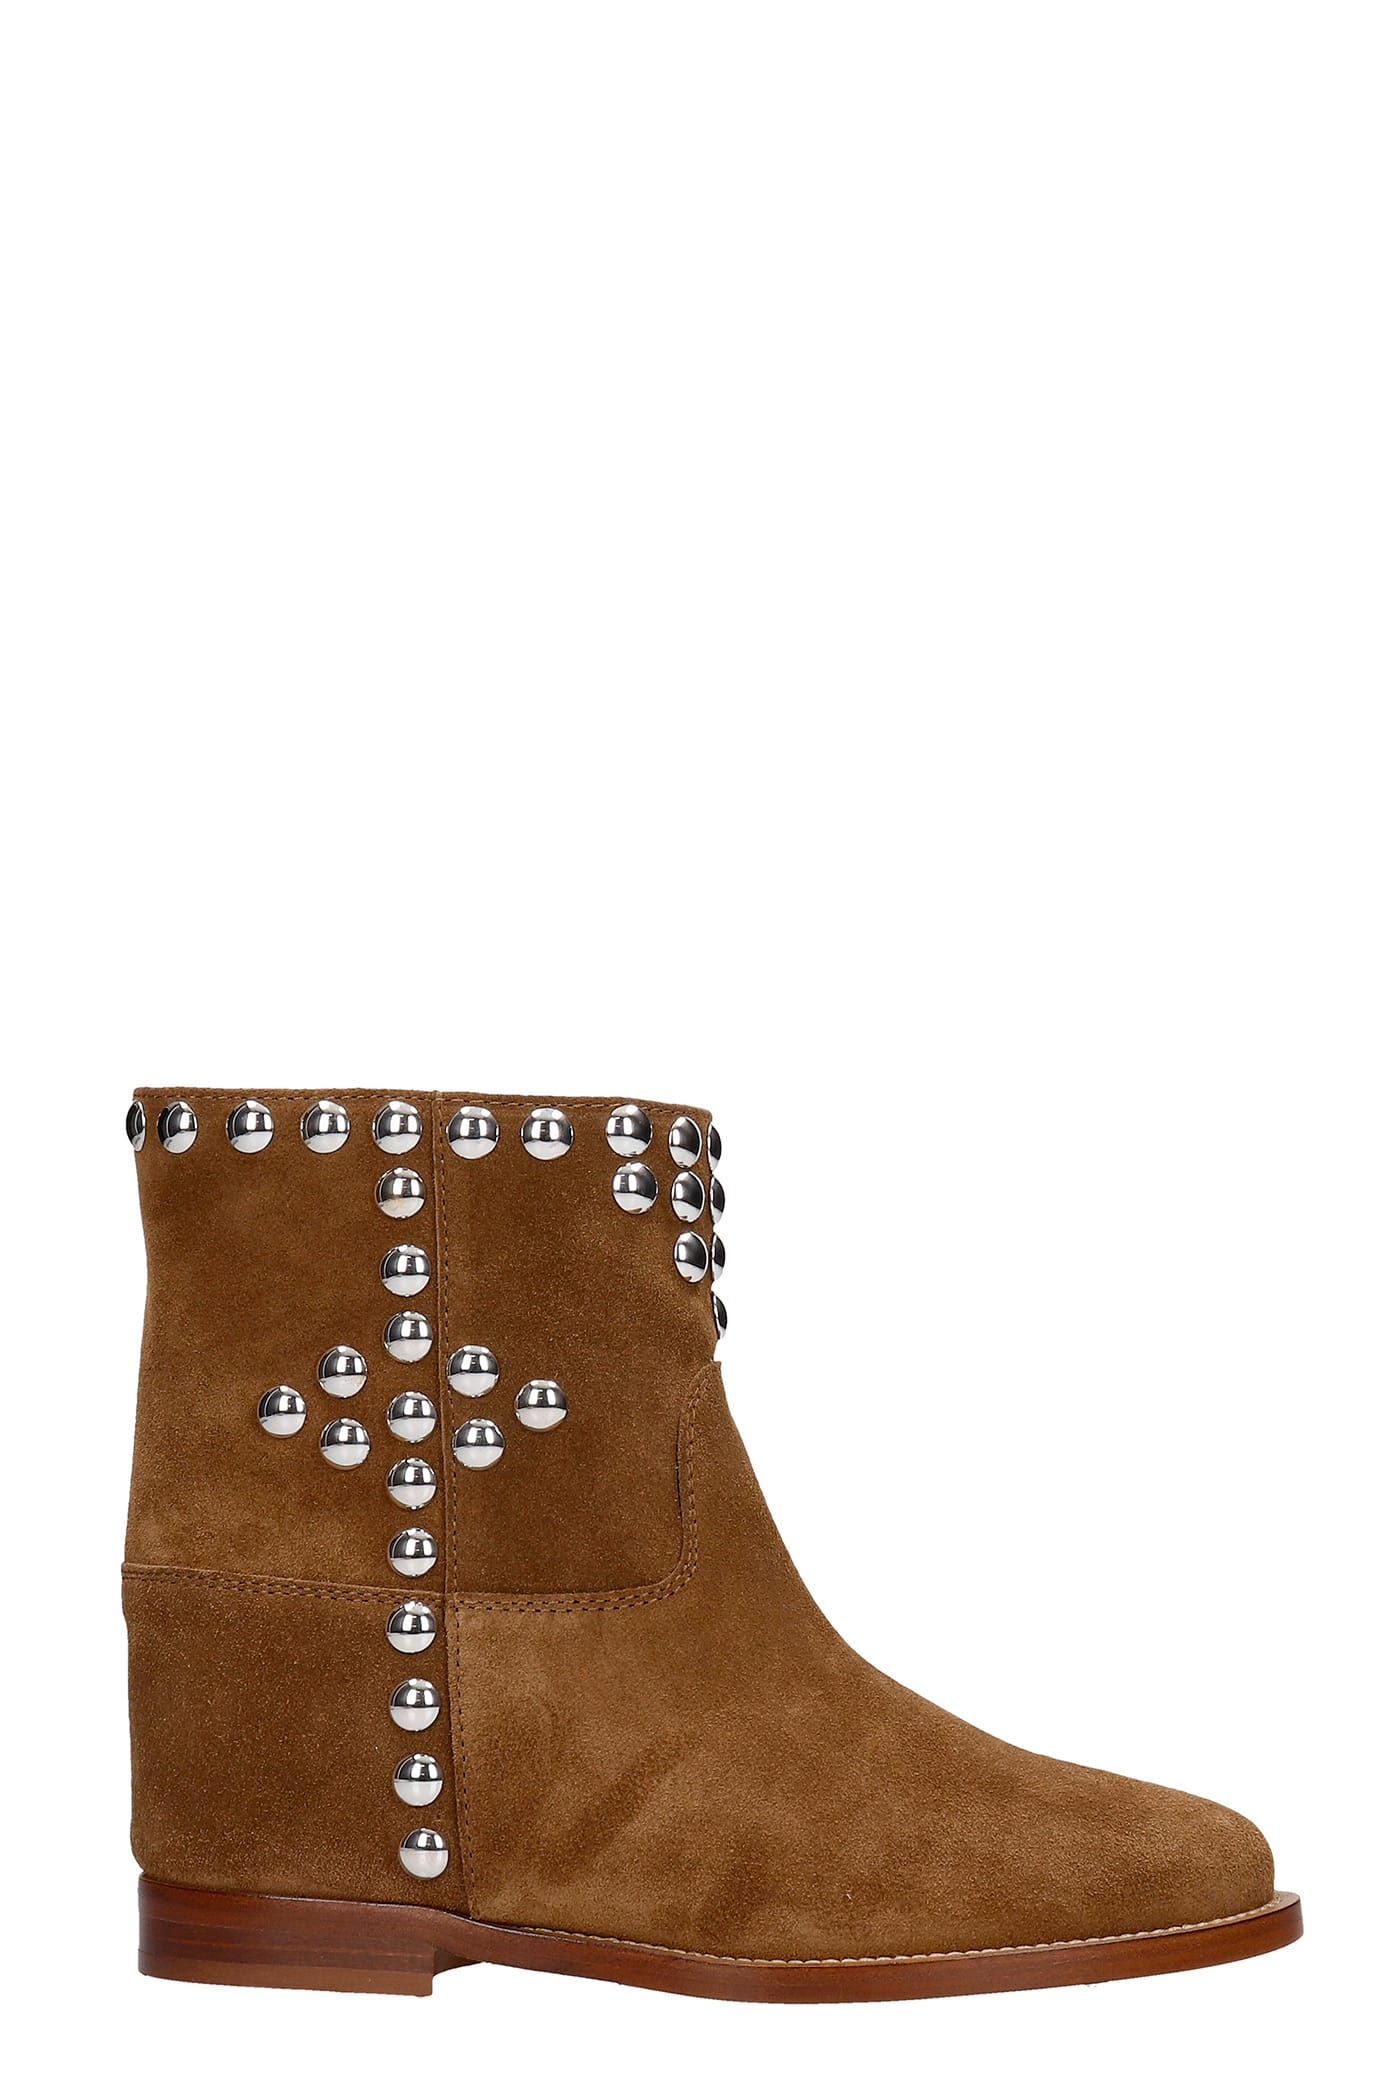 Via Roma 15 Ankel Boots Inside Wedge In Brown Suede